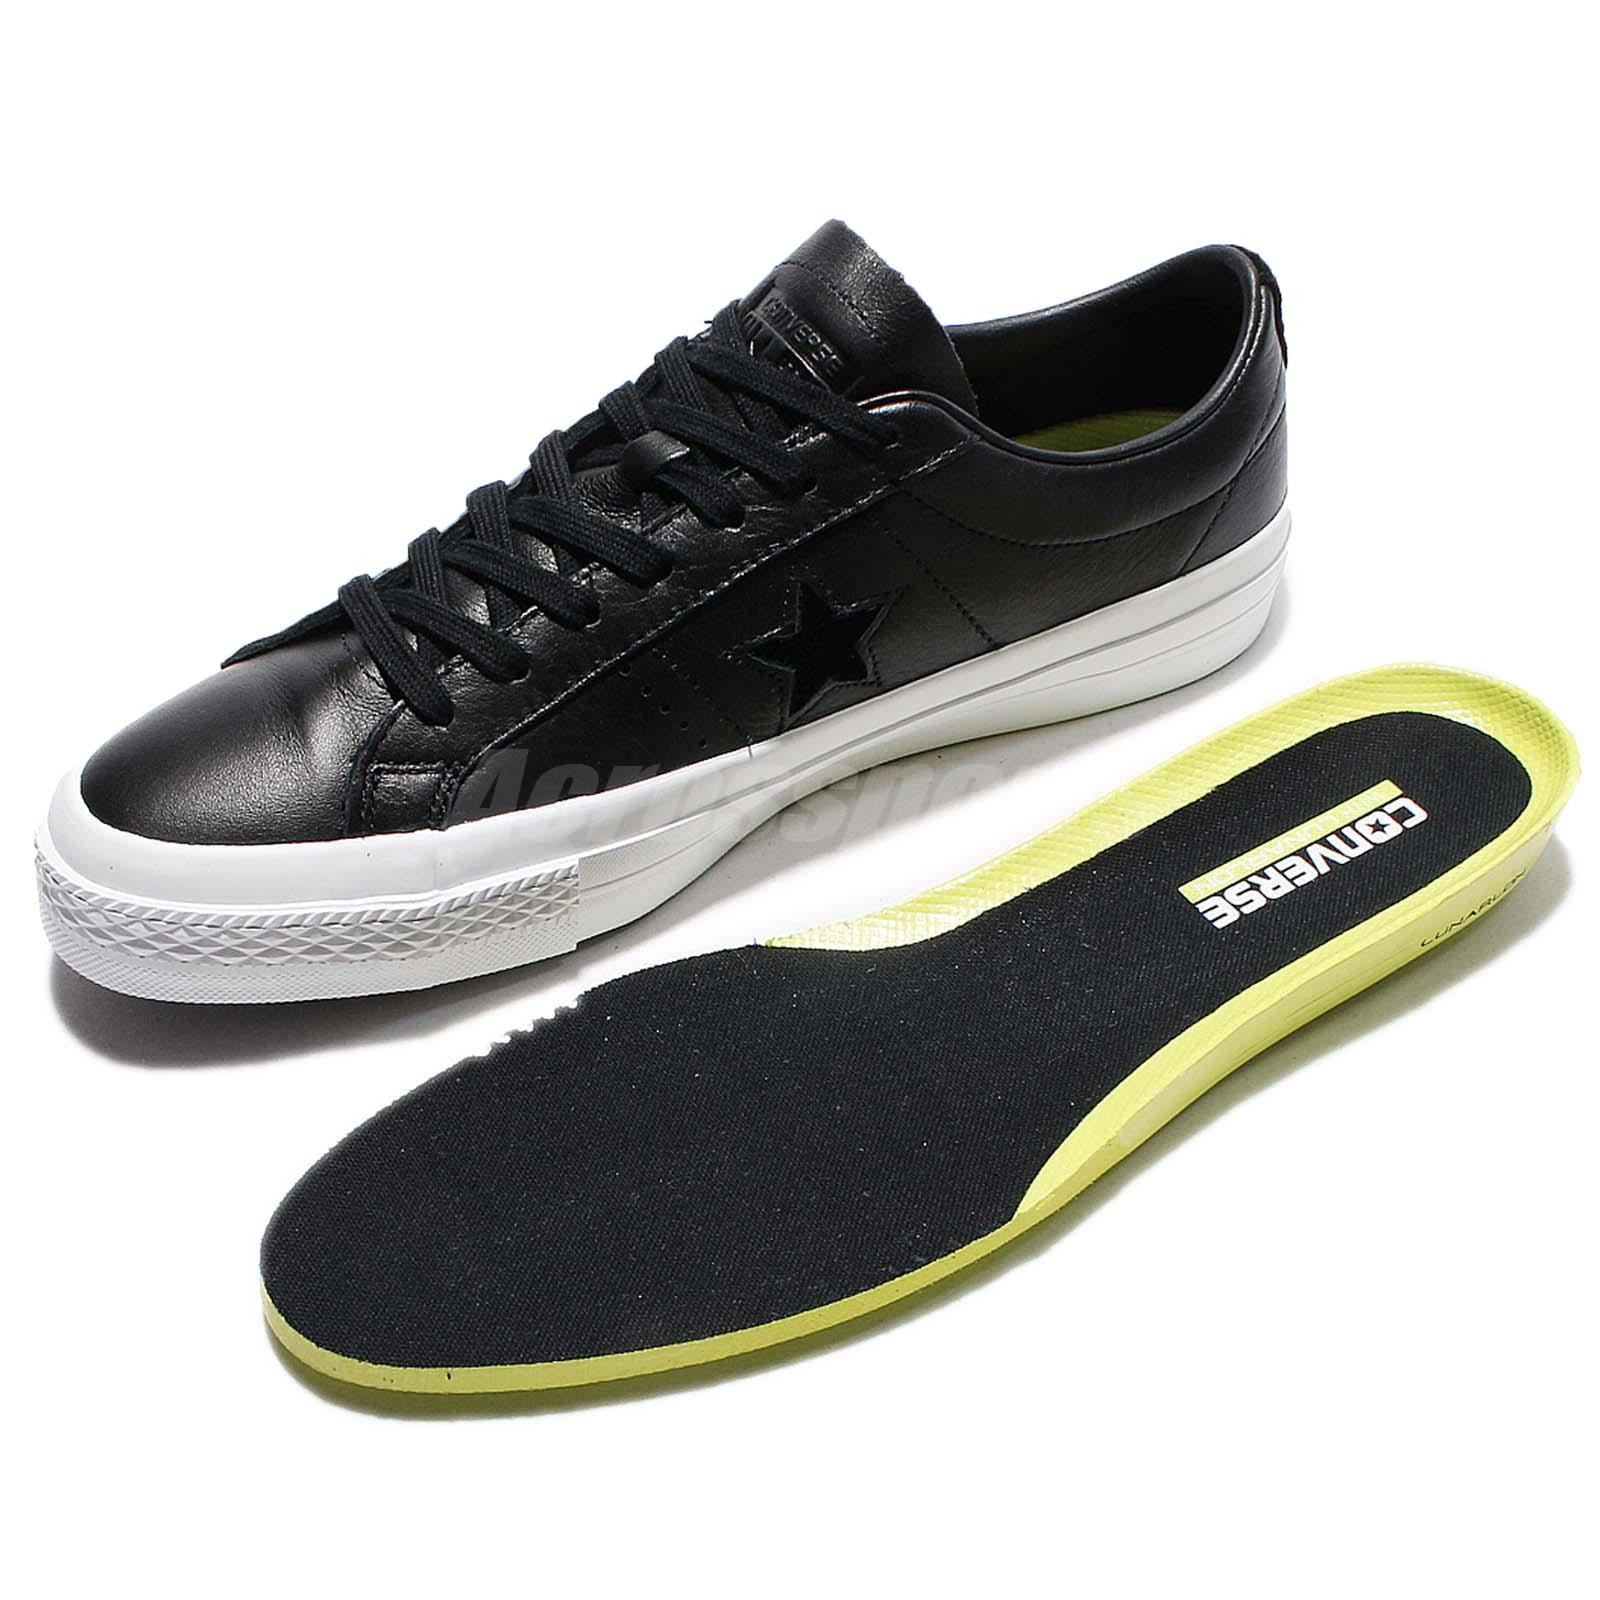 7f600a57d41f Details about Converse One Star Premium Leather Low Top Black White Men  Classic Shoes 155548C